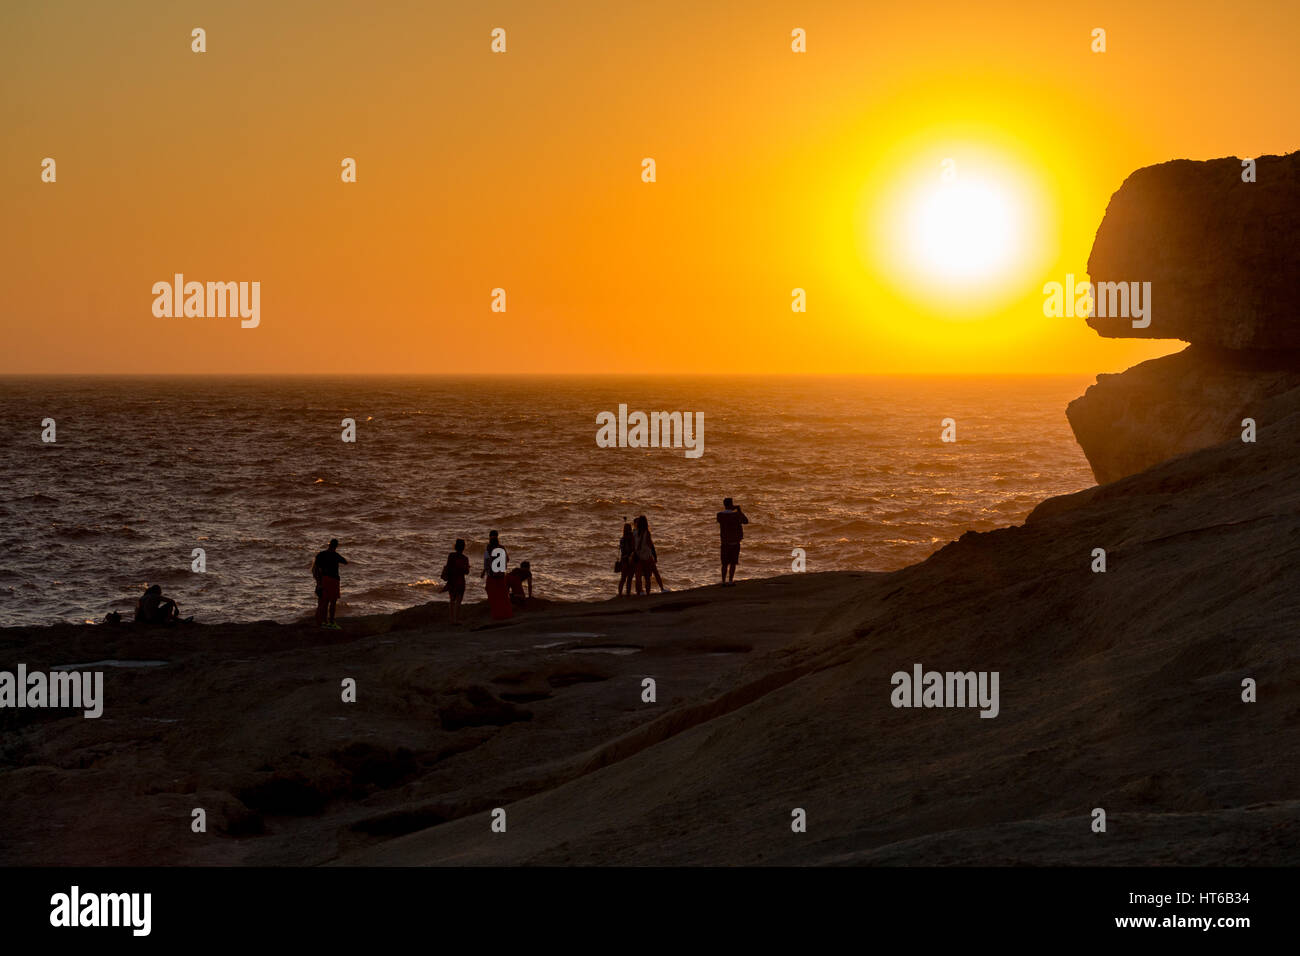 Silhouettes of people by the Azure Window, Malta - Stock Image